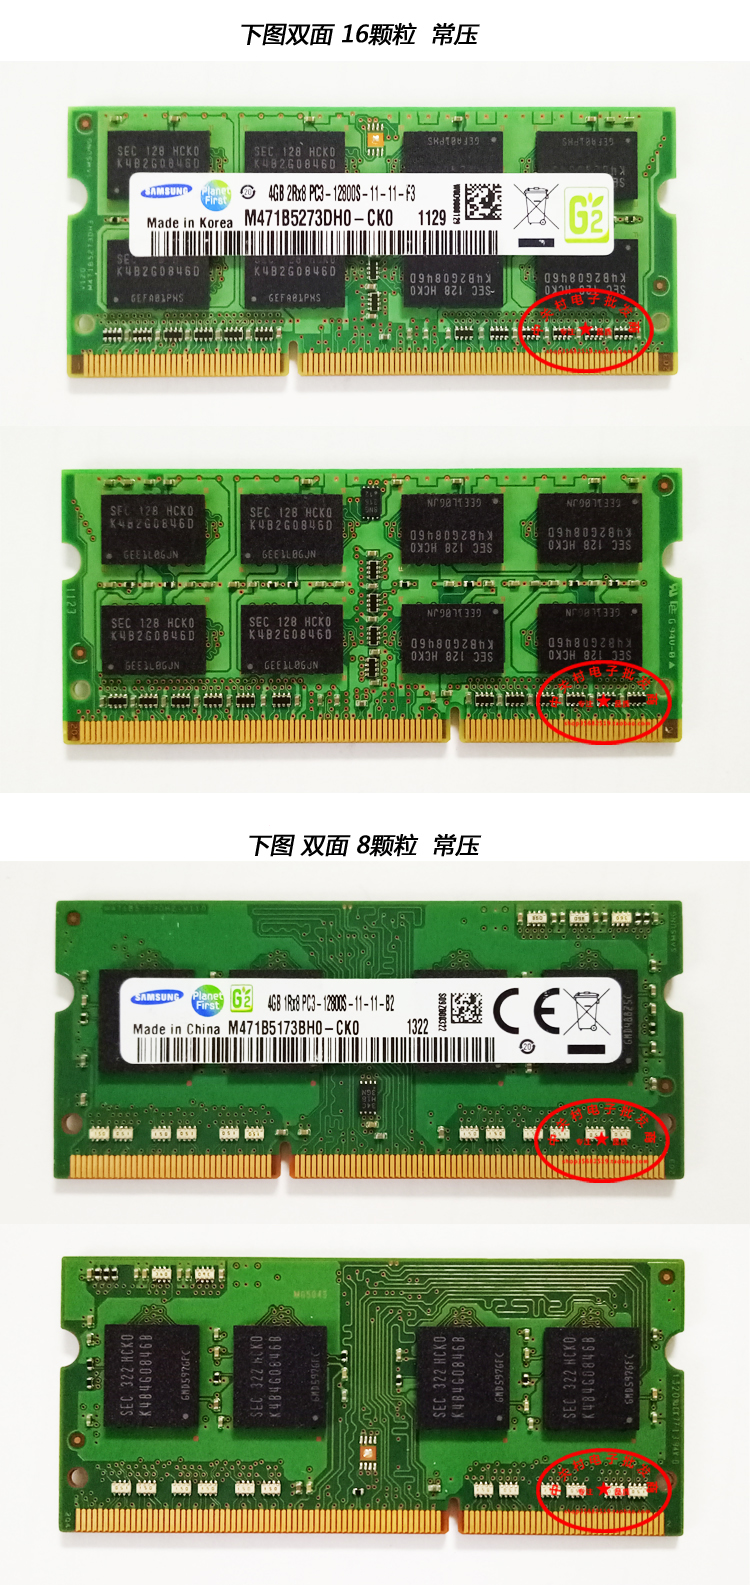 Samsung Samsung Samsung 4G DDR3 1600 PC3-12800S notebook memory bar authentic atmospheric pressure 1.5V